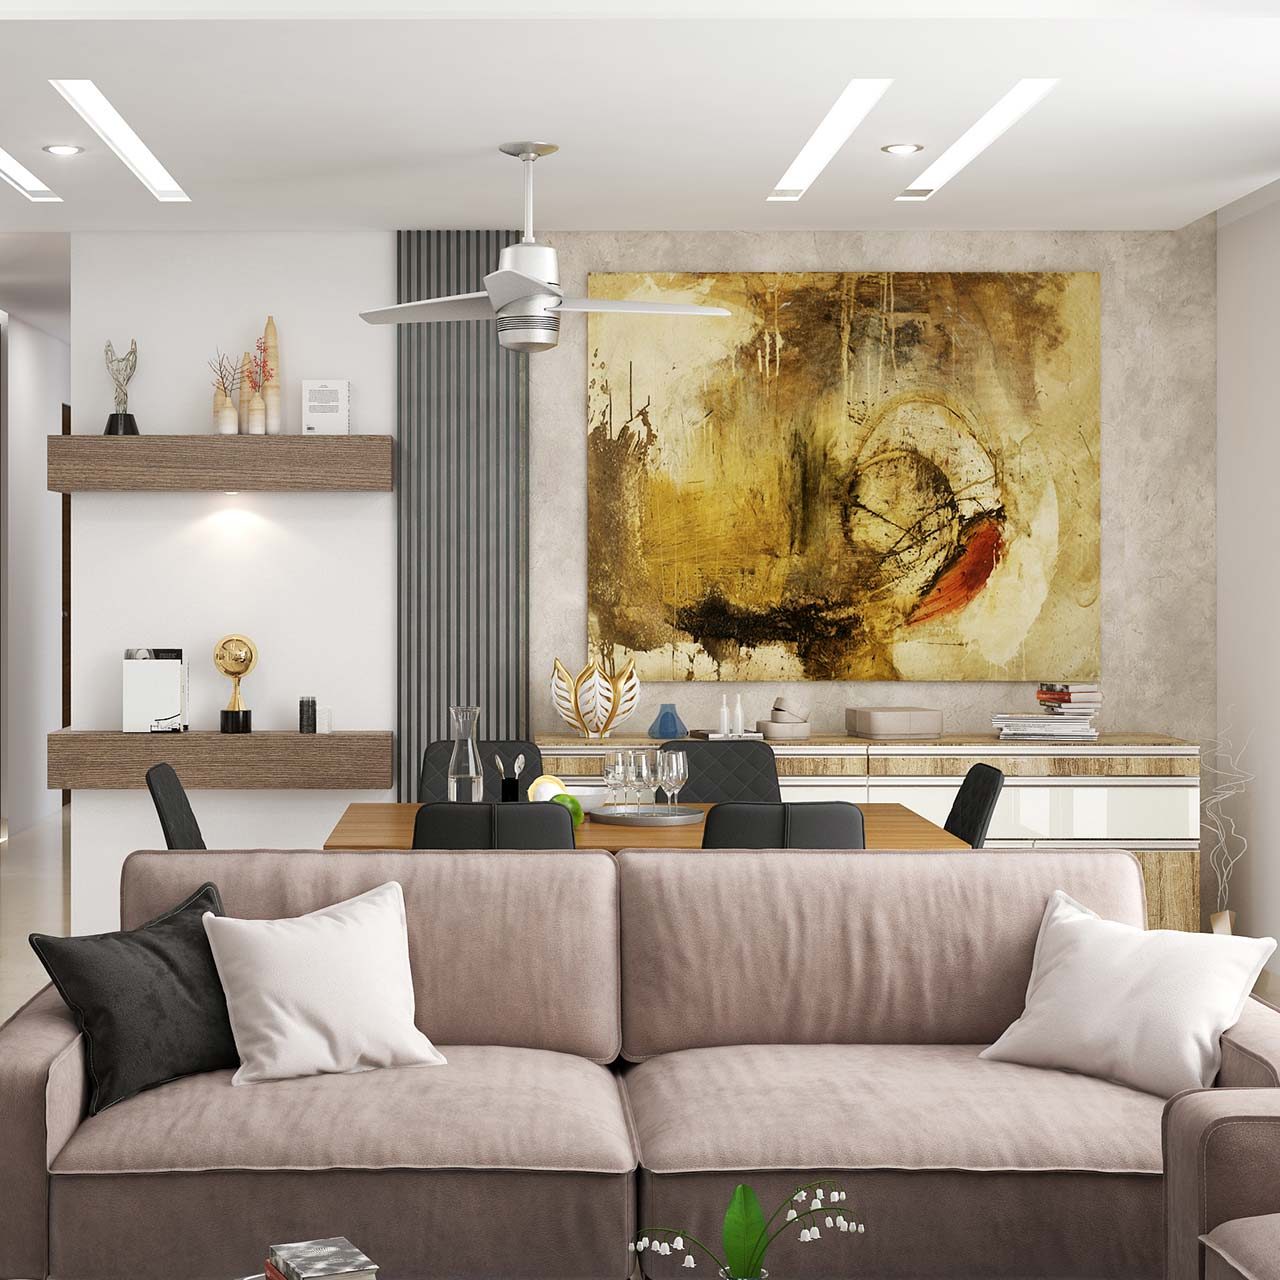 Living room wall design and decor make a collage with different styles of frames and mount it on the wall